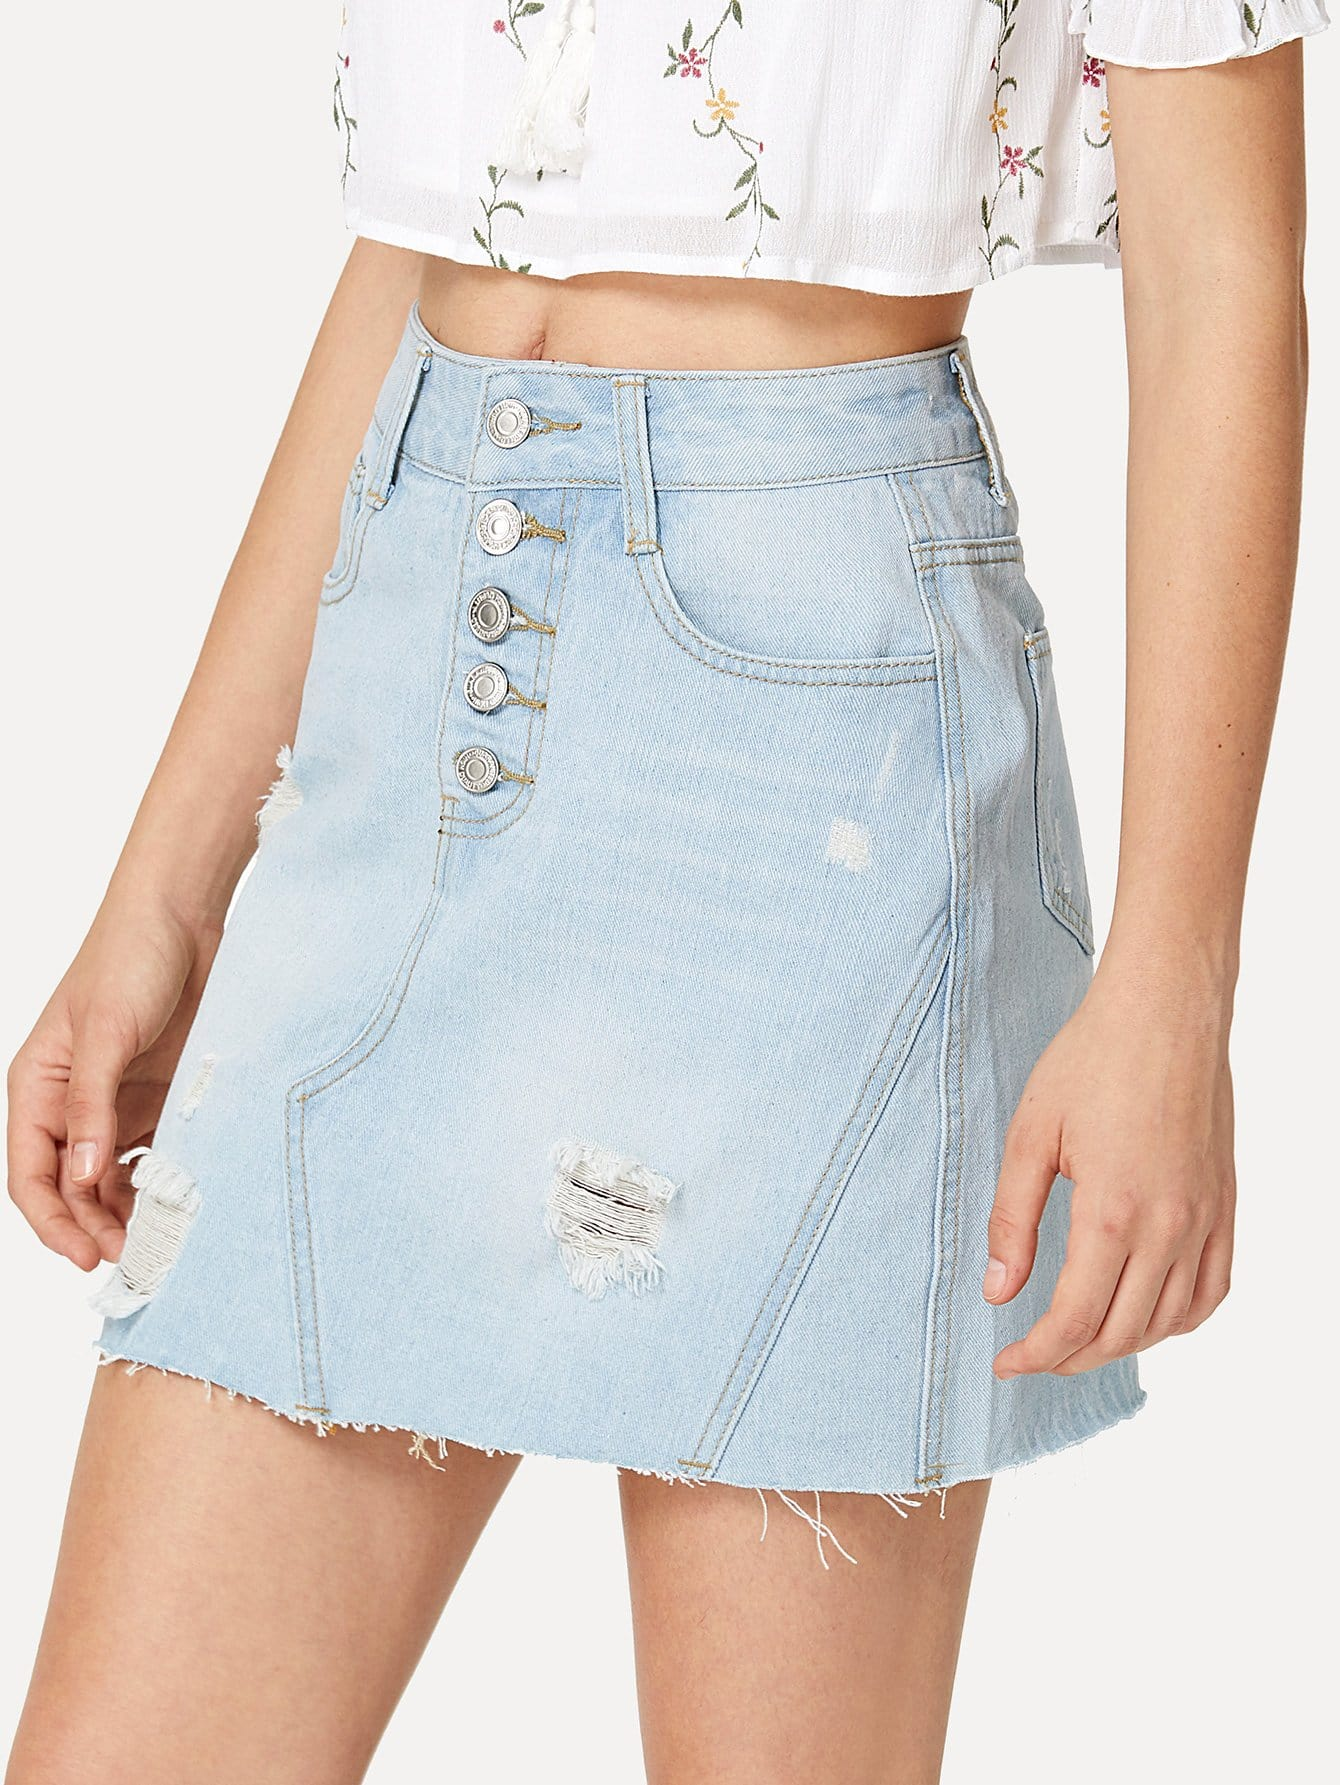 Light Wash Button Fly Detroyed Denim Skirt unedged button fly asymmetrical skirt